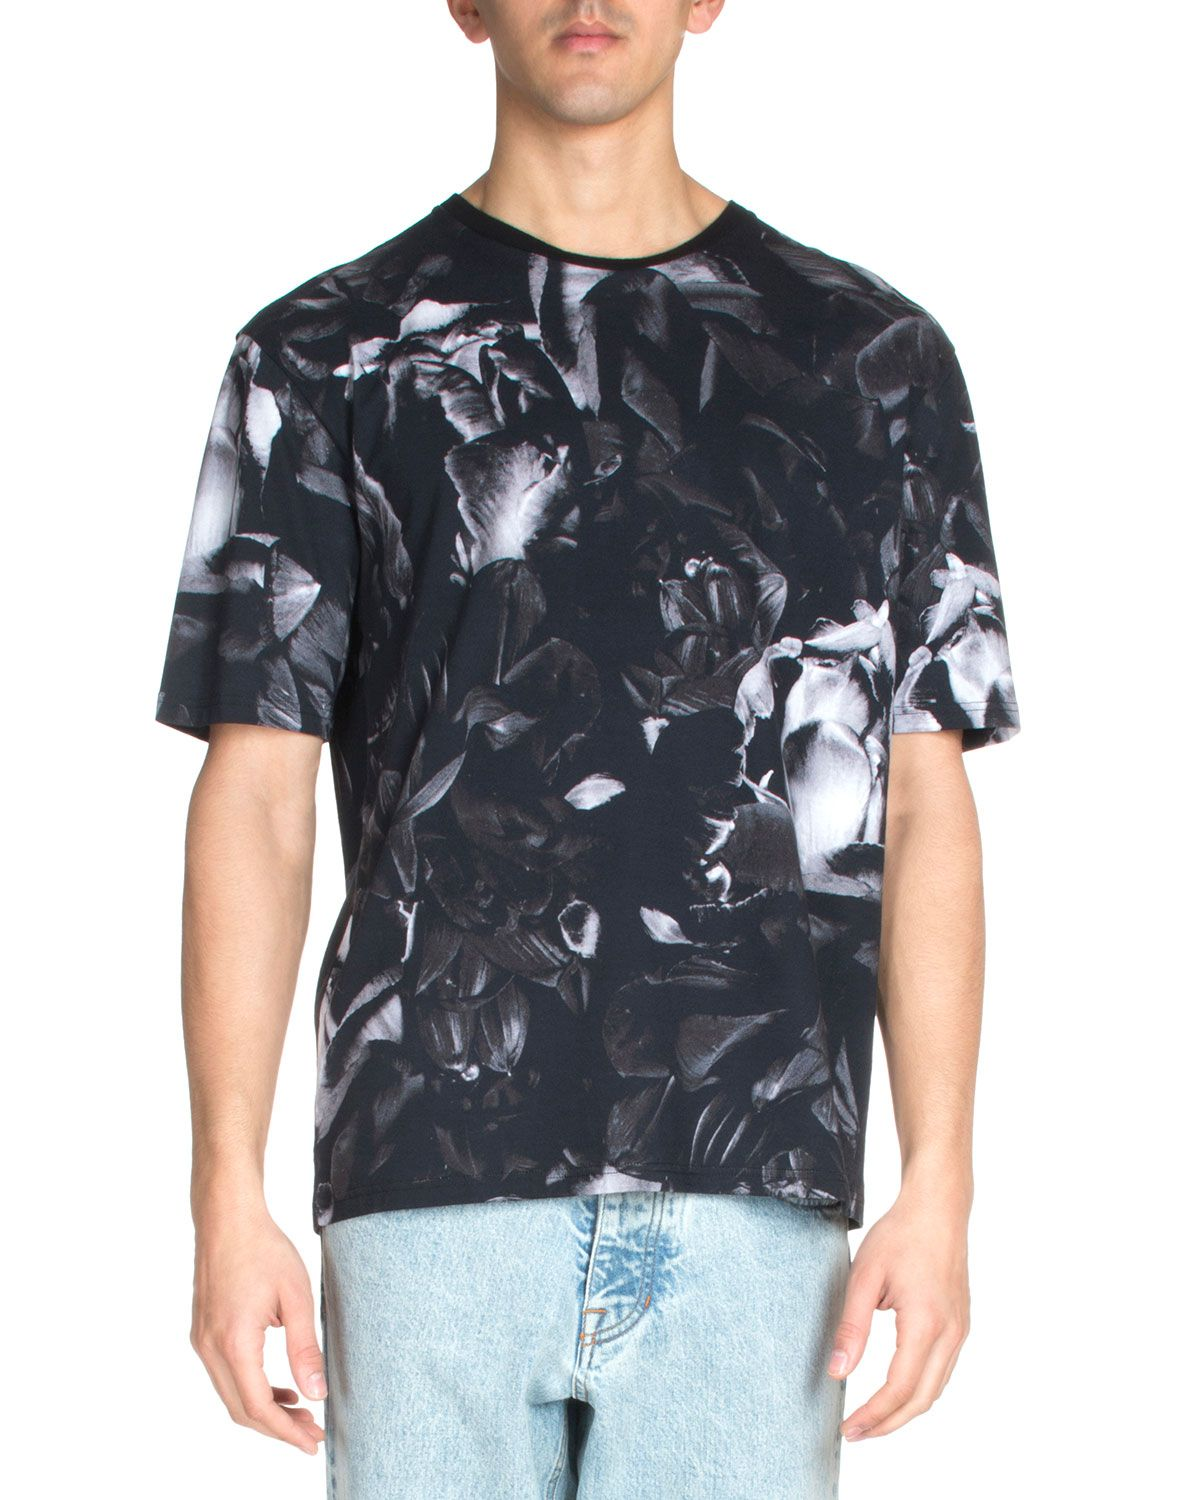 Floral-Print Short-Sleeve Tee, Black, Men's, Size: X-LARGE - Ami